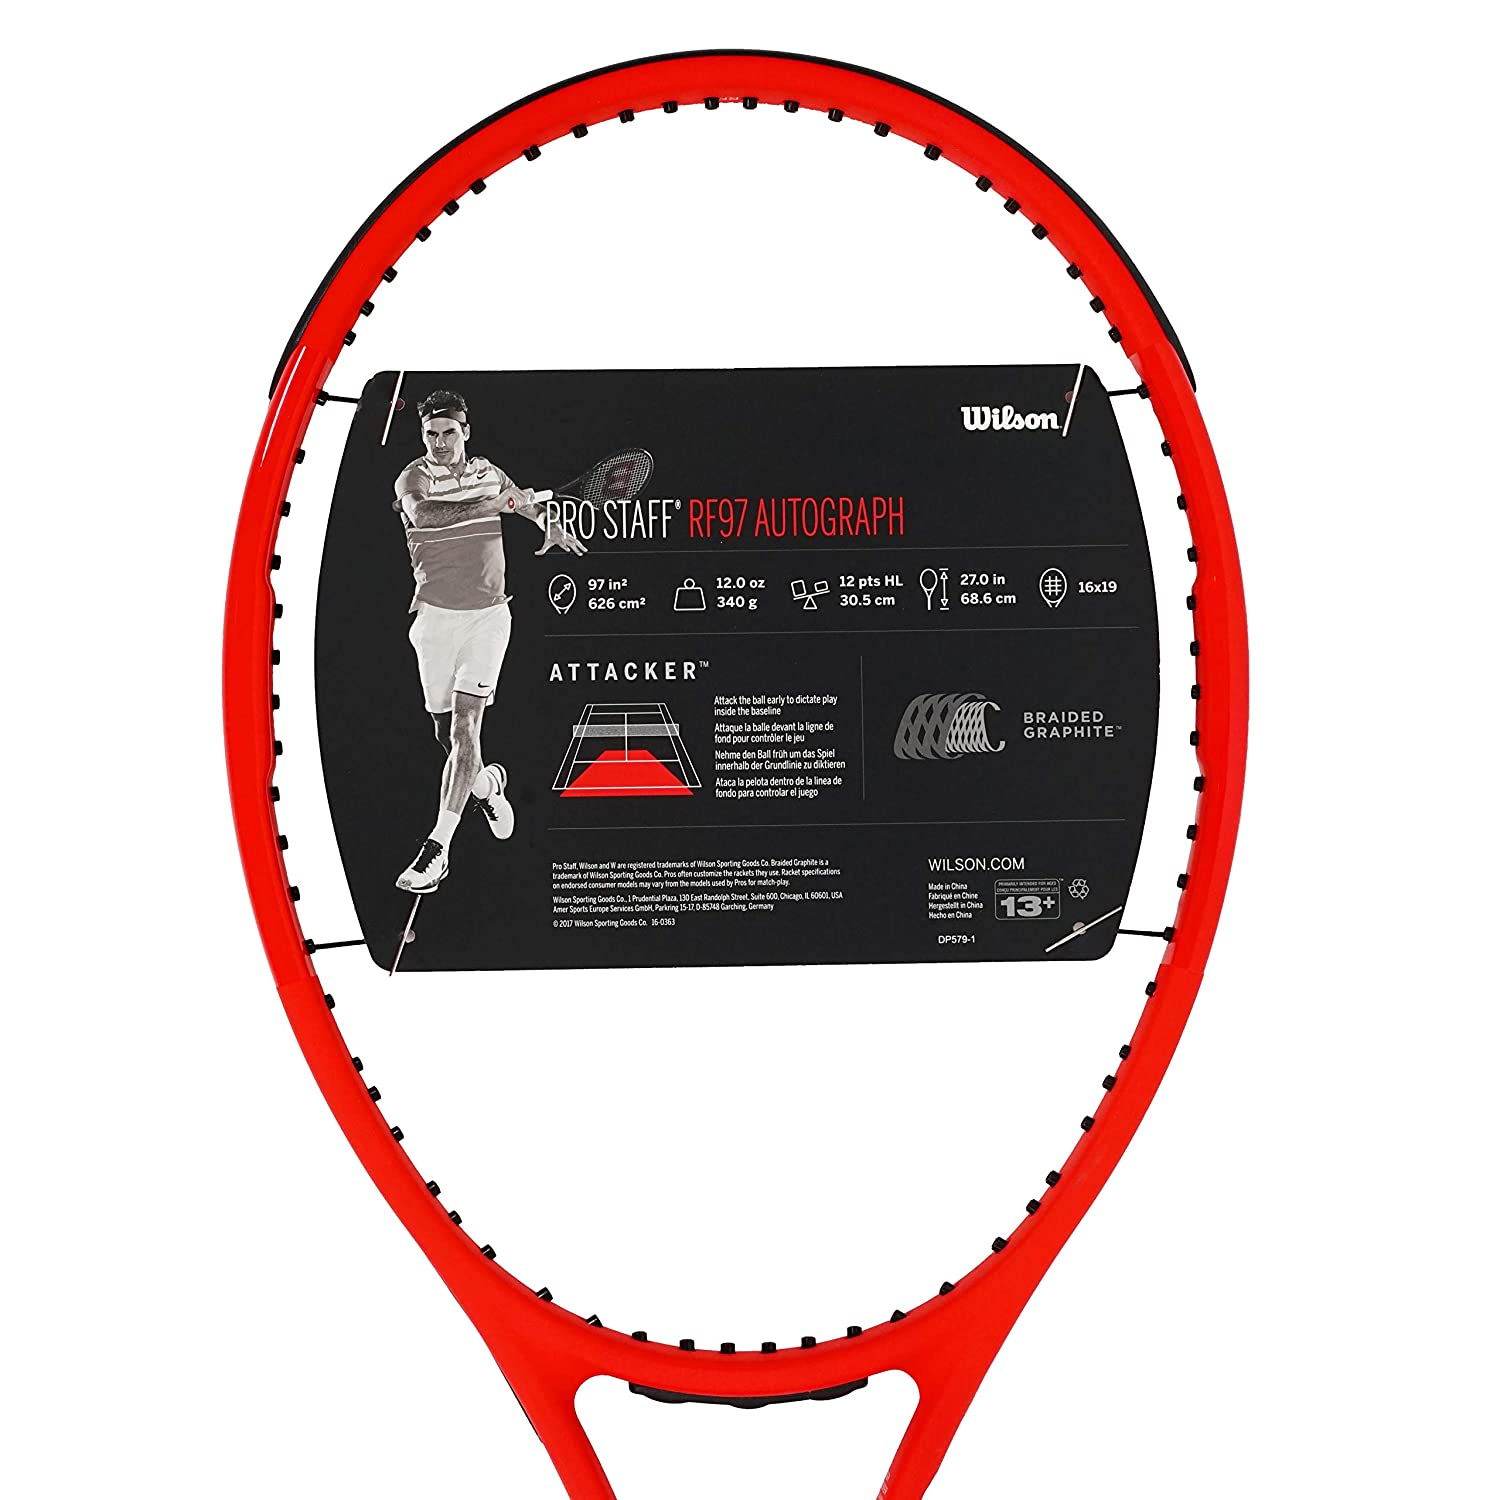 Amazon.com : |VuTenniscom| Wilson Pro Staff RF 97 Black or Black/White or Red Laver Cup, Free String (Black #2 [4 1/4]) : Sports & Outdoors